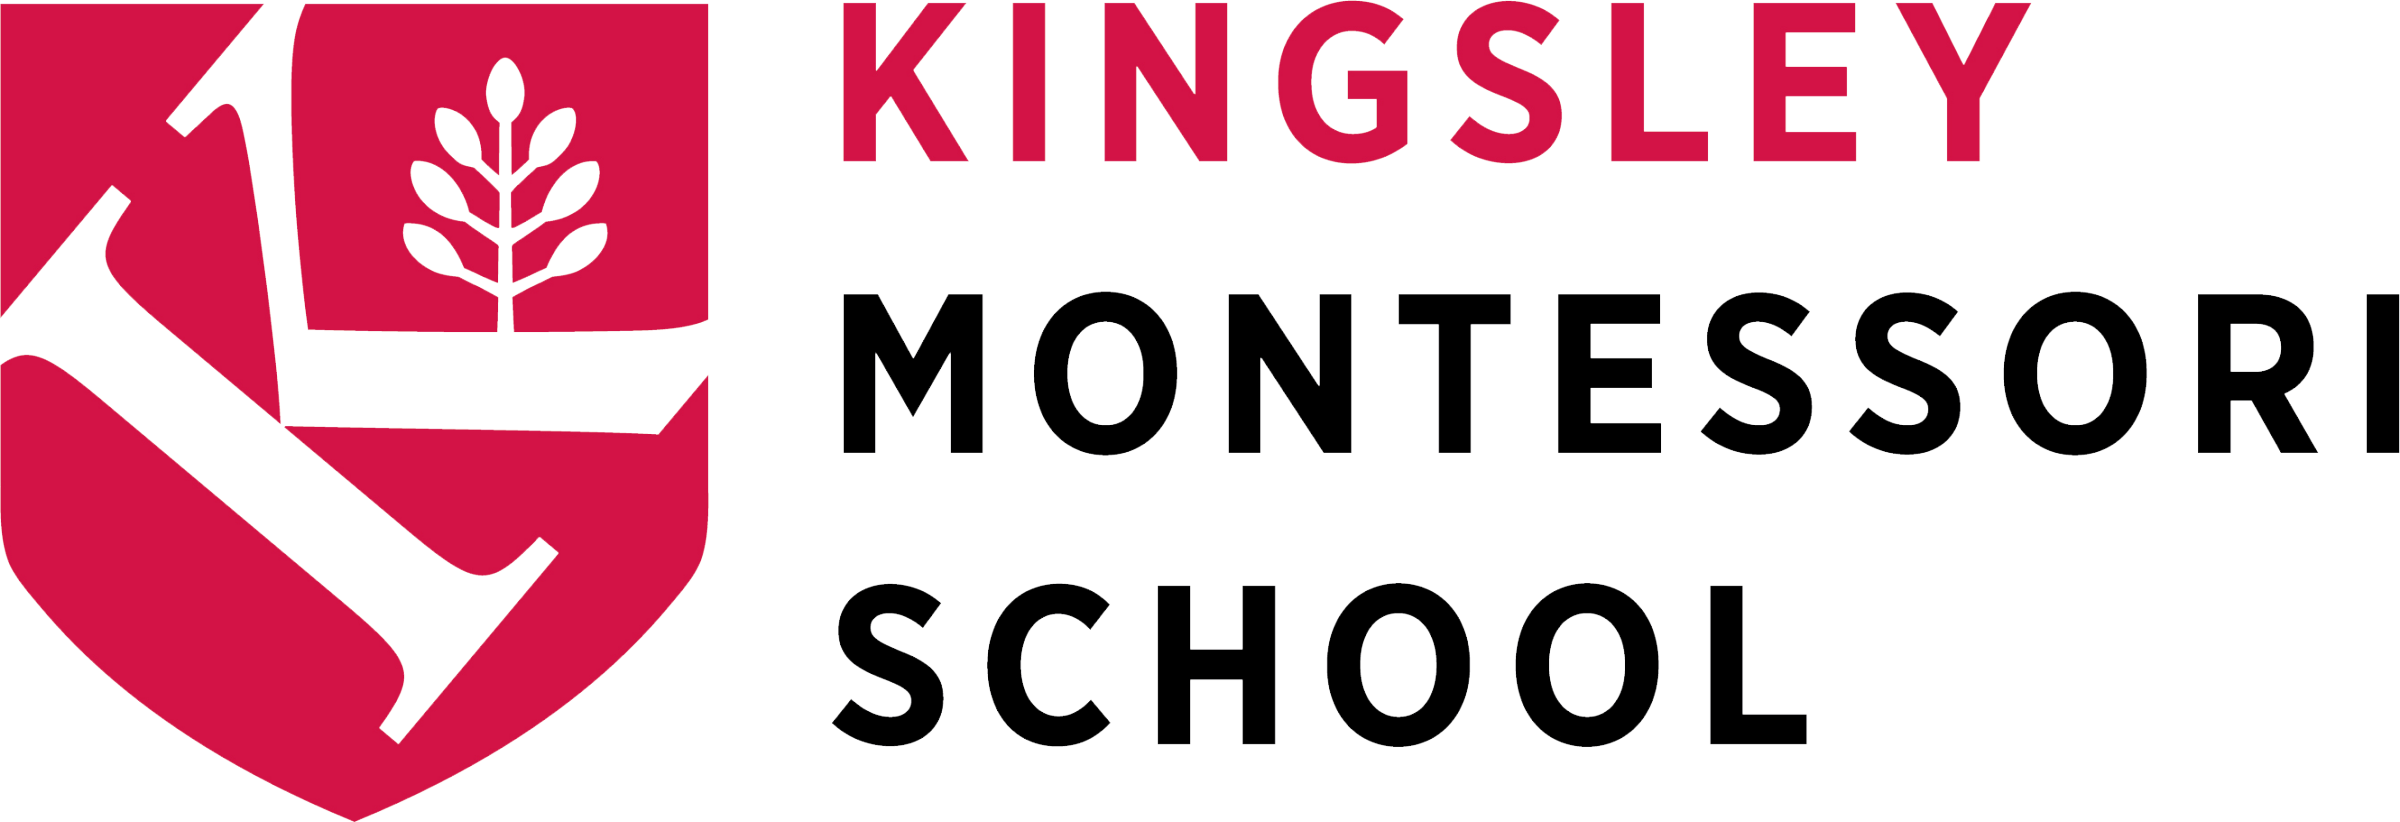 Kingsley Montessori School